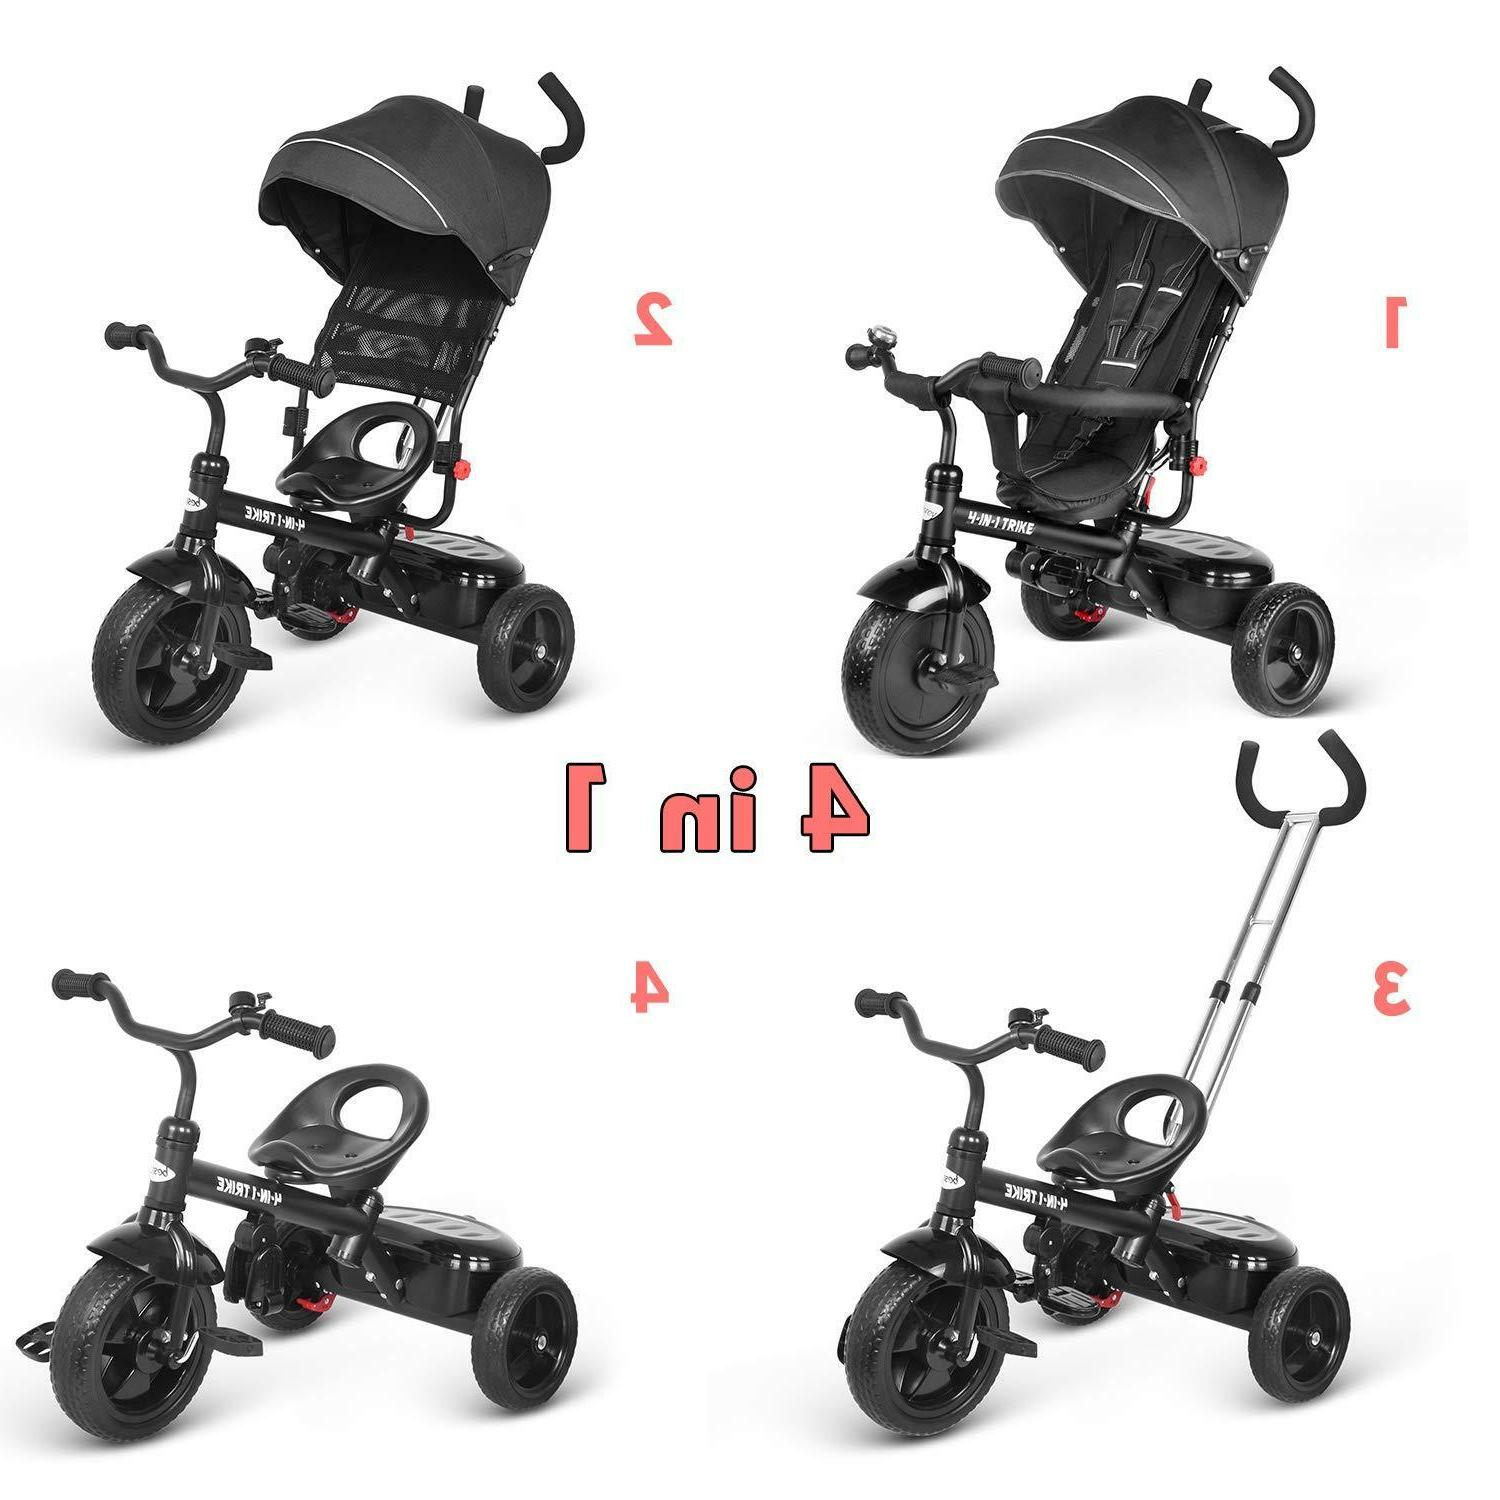 besrey Baby pedals in 1 with Hood